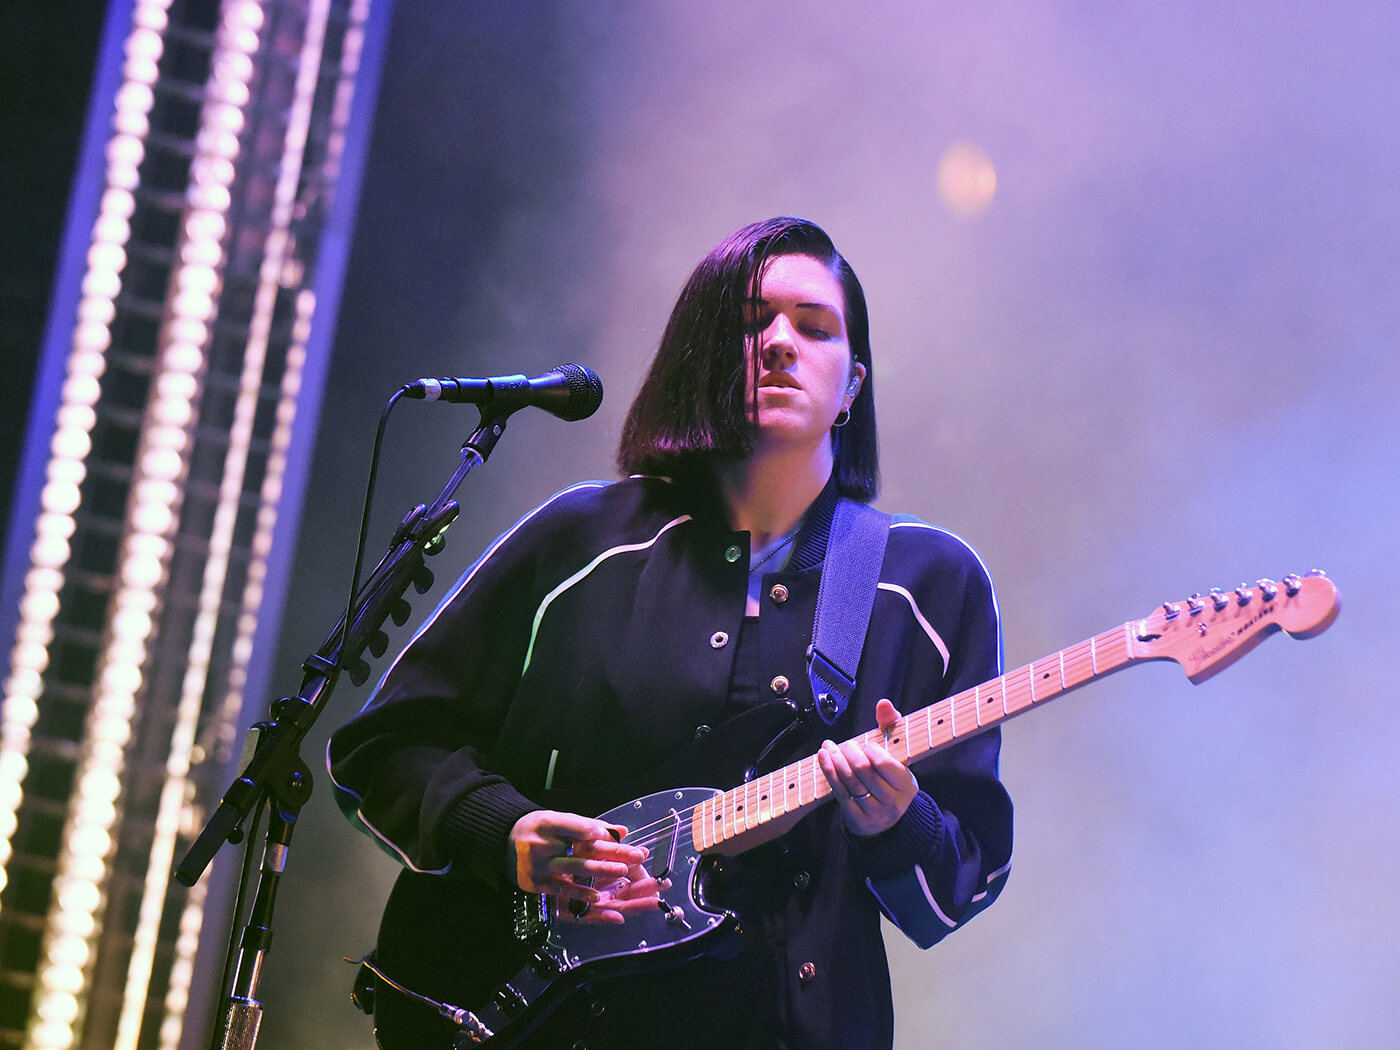 Romy Madley Craft of The XX